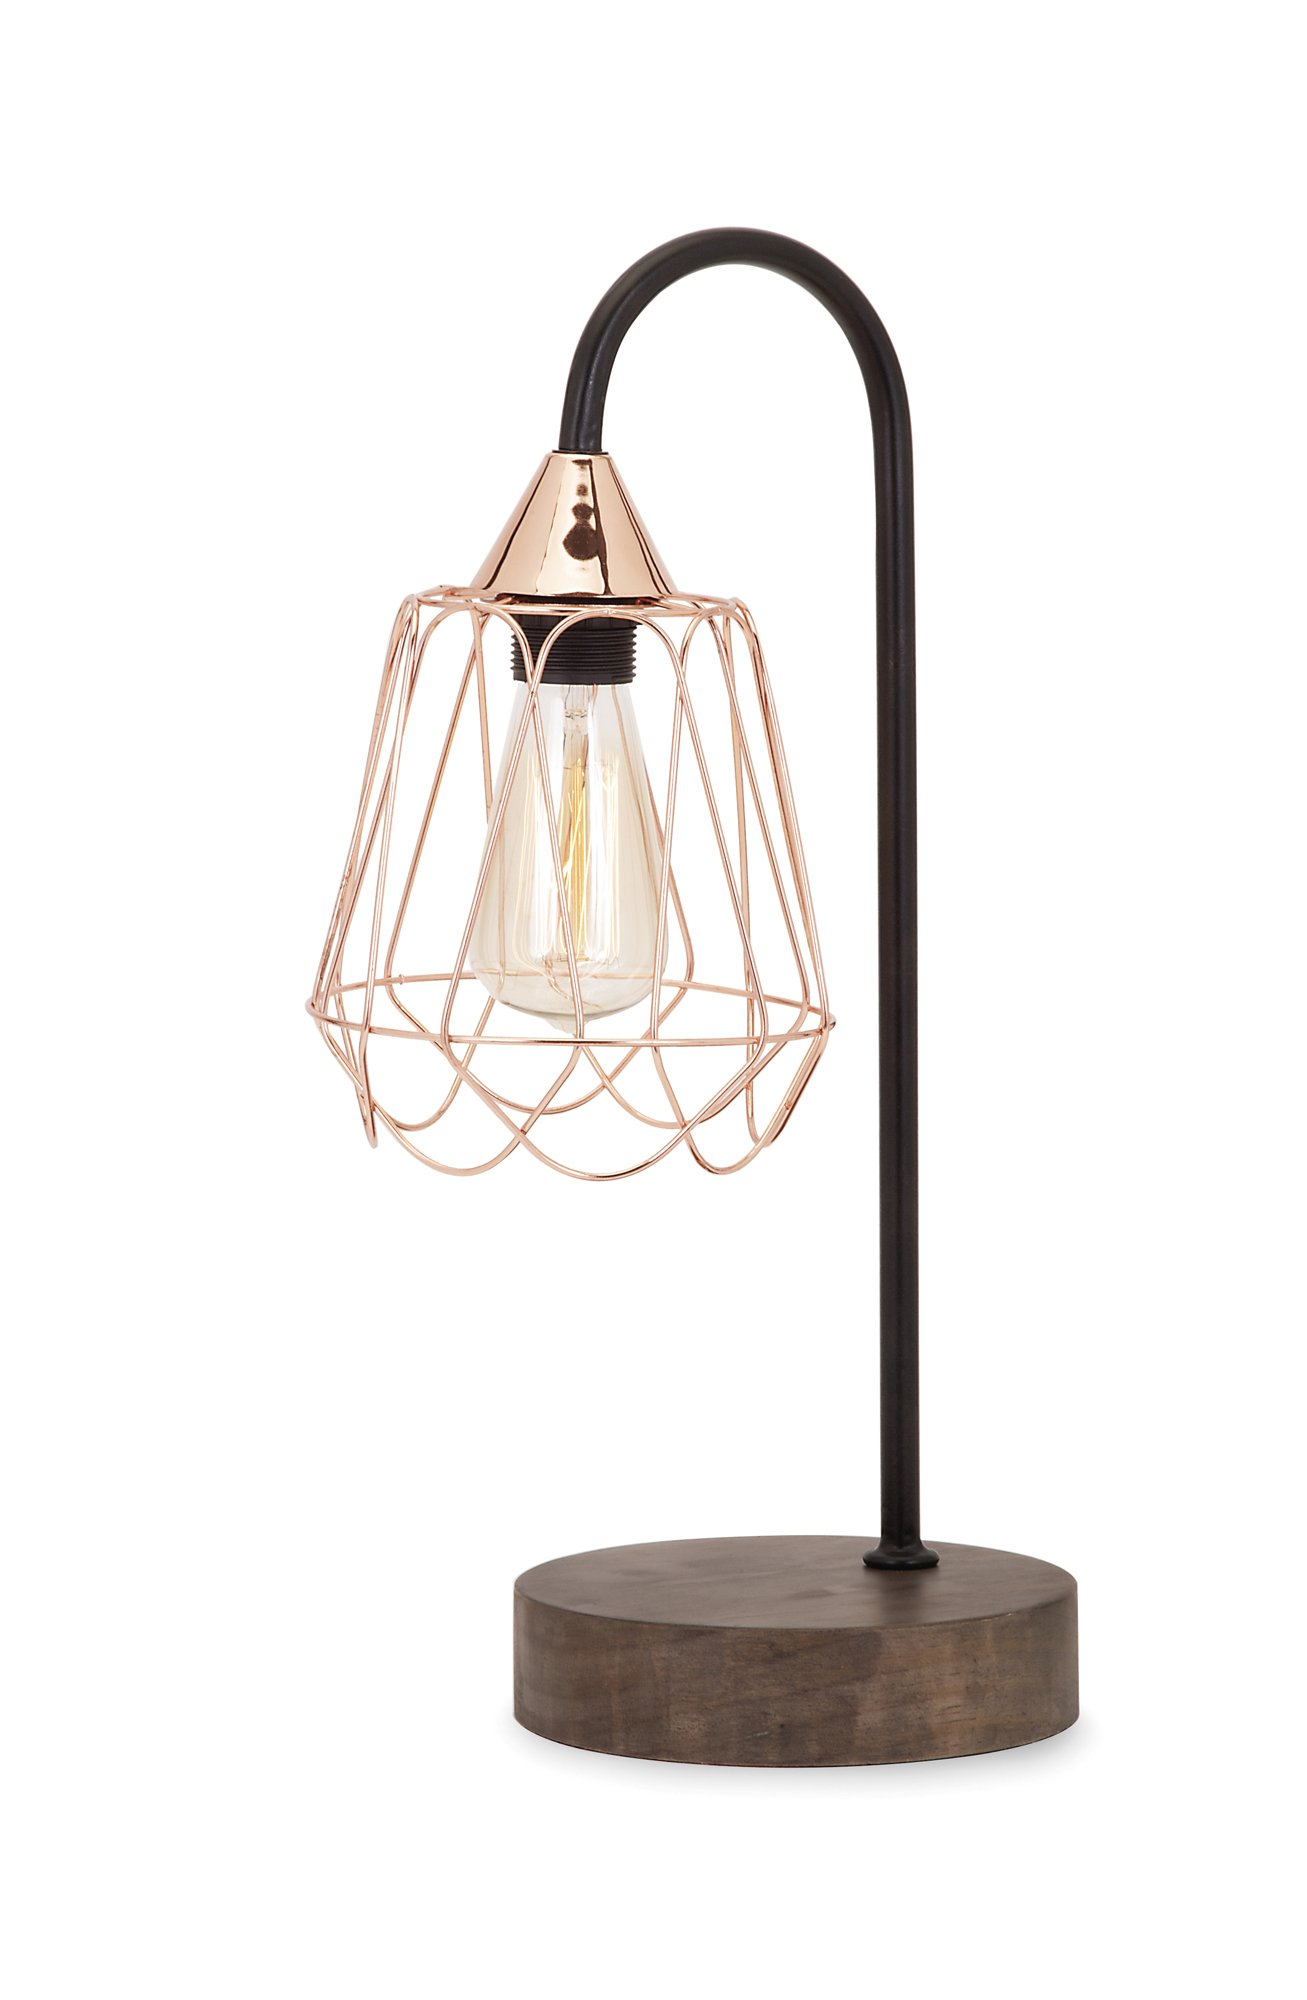 IMAX 89992 Tilton Copper and Wood Table Lamp with 60% Iron, Copper Wire Shade and Pinewood Base – Handcrafted Desk Lamp for Living Room, Bedroom, Side Tables. Home Decor Accessories